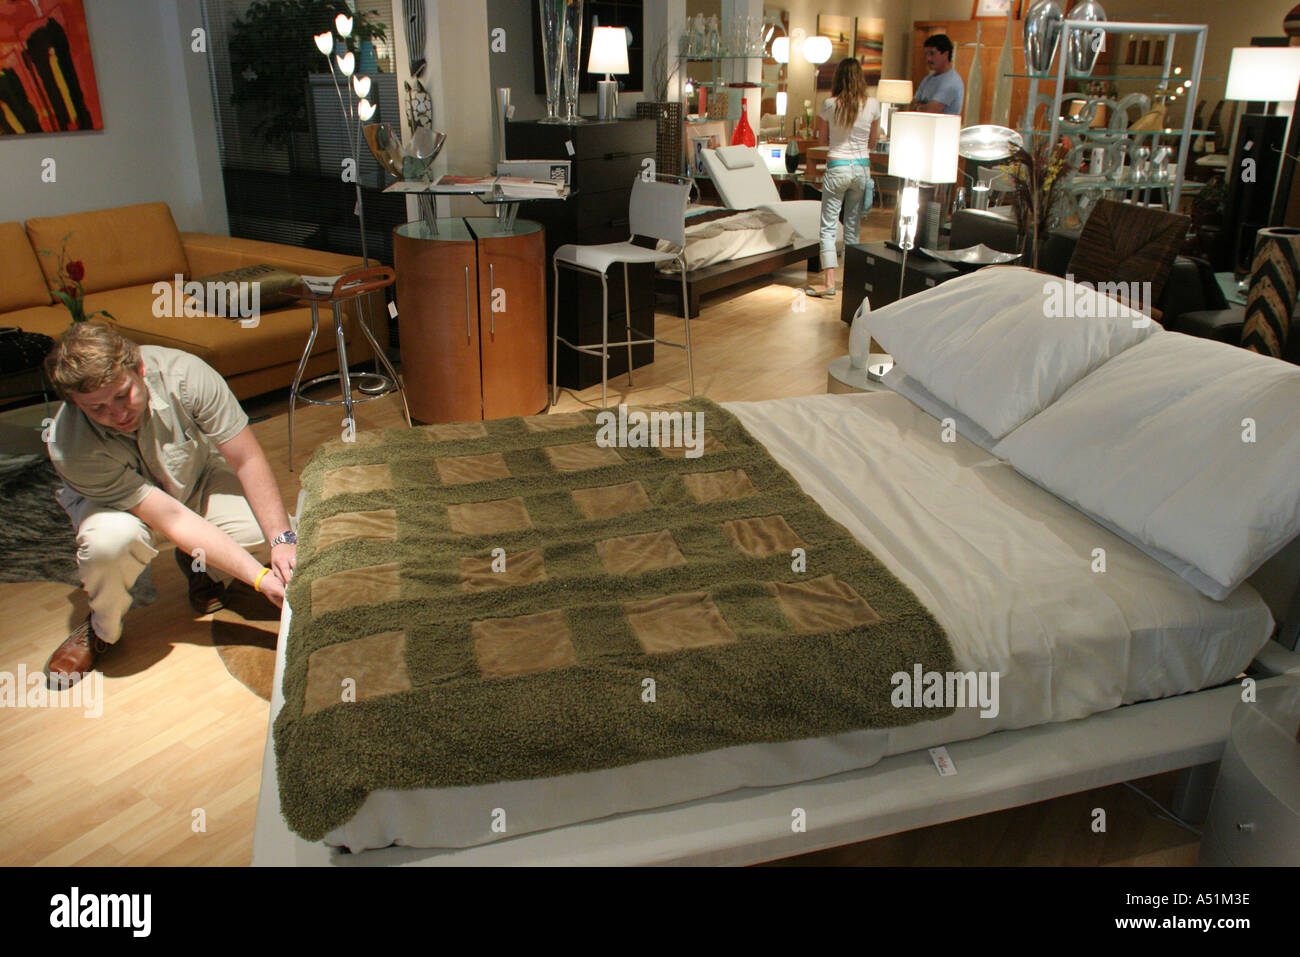 Miami Florida South Dixie Highway Furniture Store Italian Made Platform Bed  Salesman Demonstration